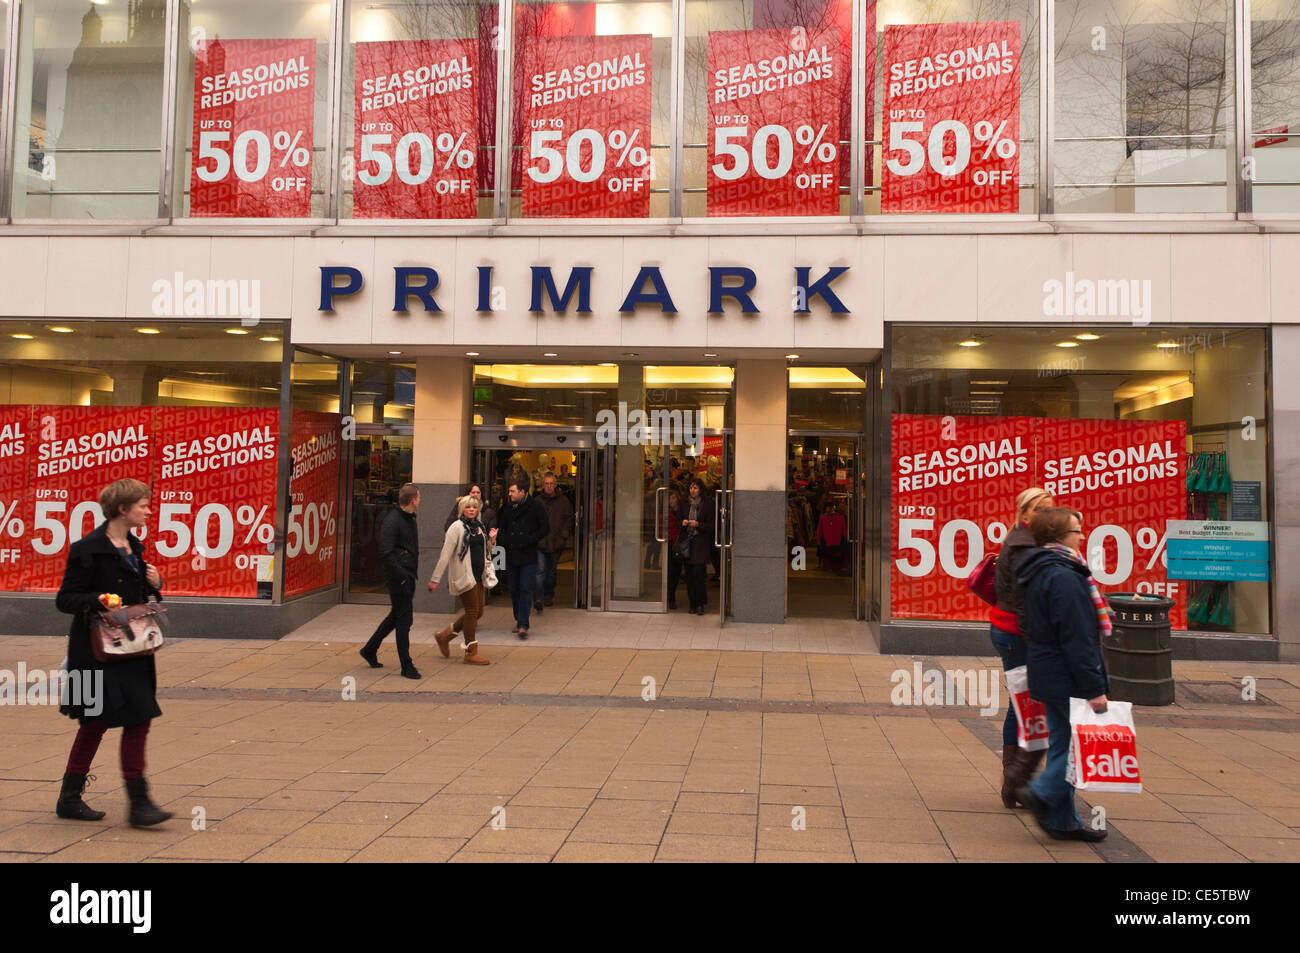 562caf2d92a Primark Store Stores Uk Stock Photos   Primark Store Stores Uk Stock ...